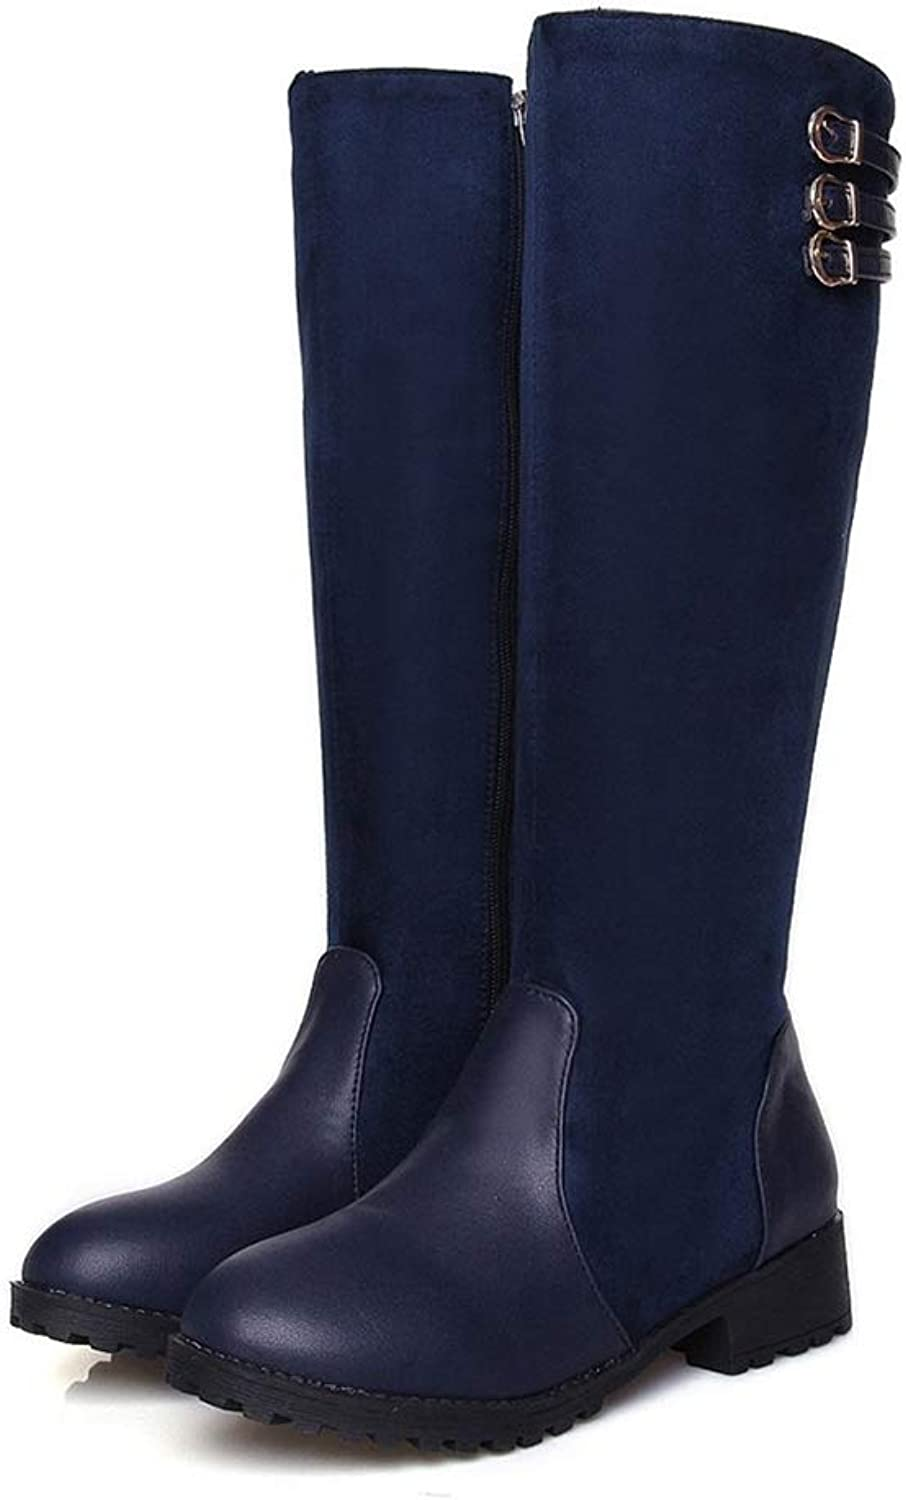 Hoxekle Woman Knee High Boots Zipper Buckle Strap Low Square Heel Winter Warm Fashion Ladies Riding Sexy Long Boots